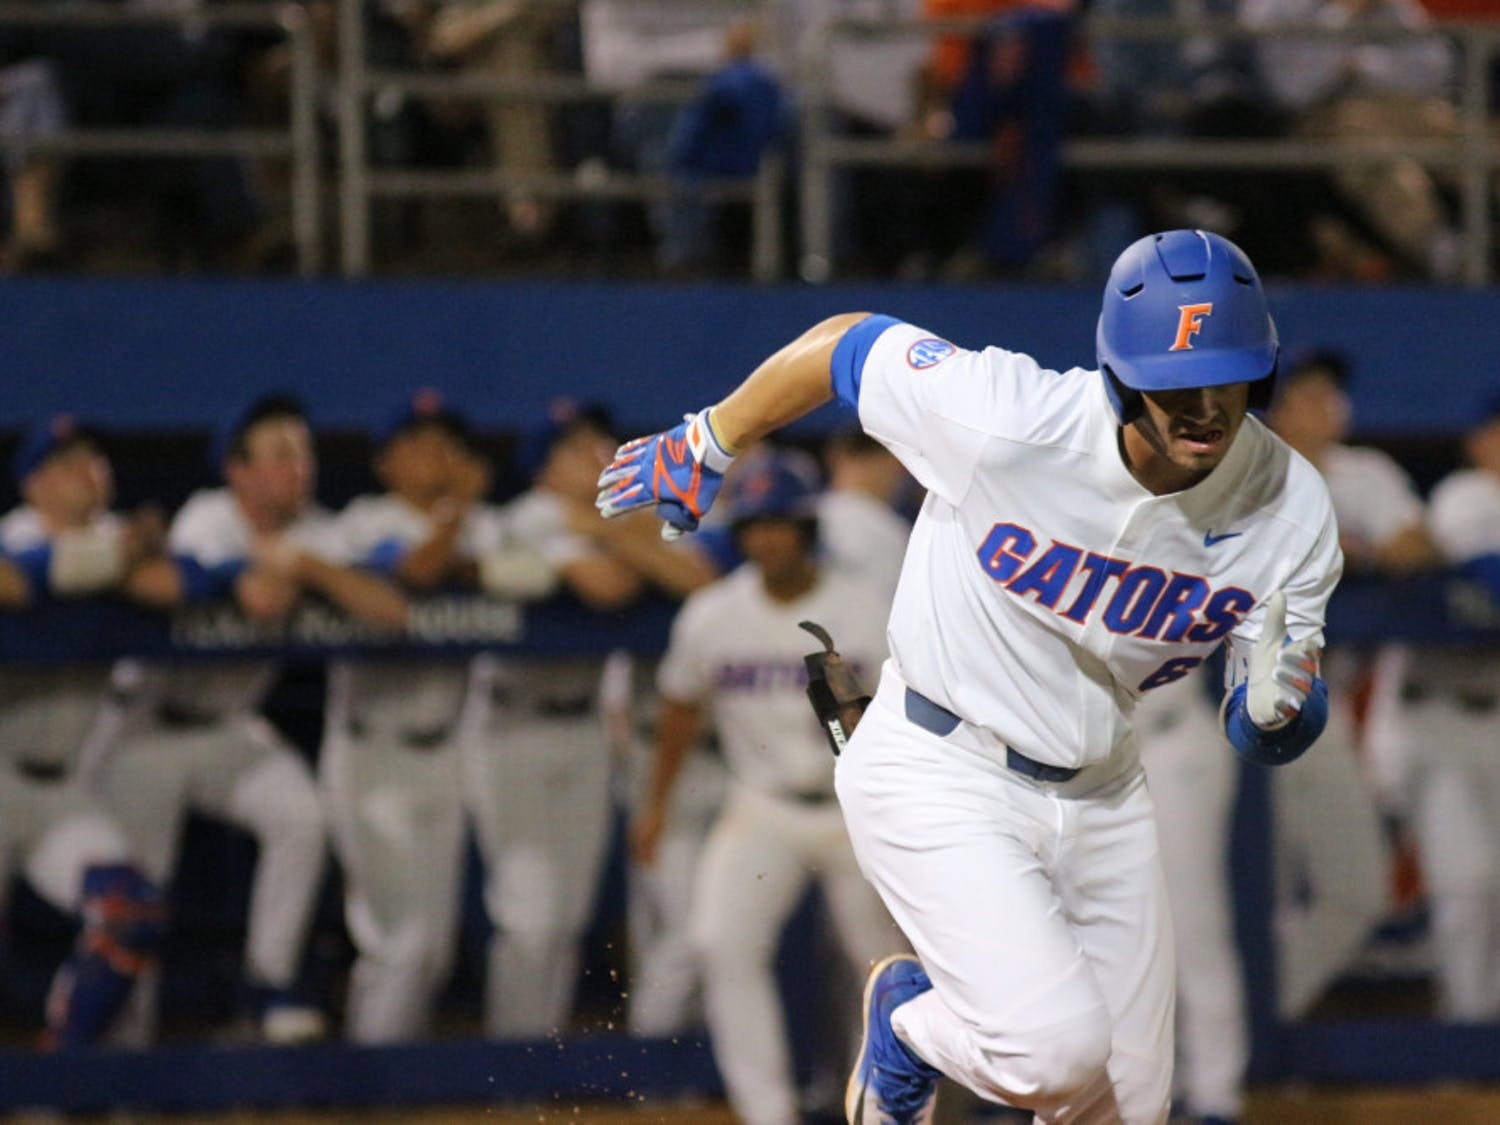 UF third baseman Jonathan India's solo home run jump-started the Gators' offense on a 3-2 win against Jacksonville at the Gainesville Regional. His solo home run was one of three for Florida on the night.